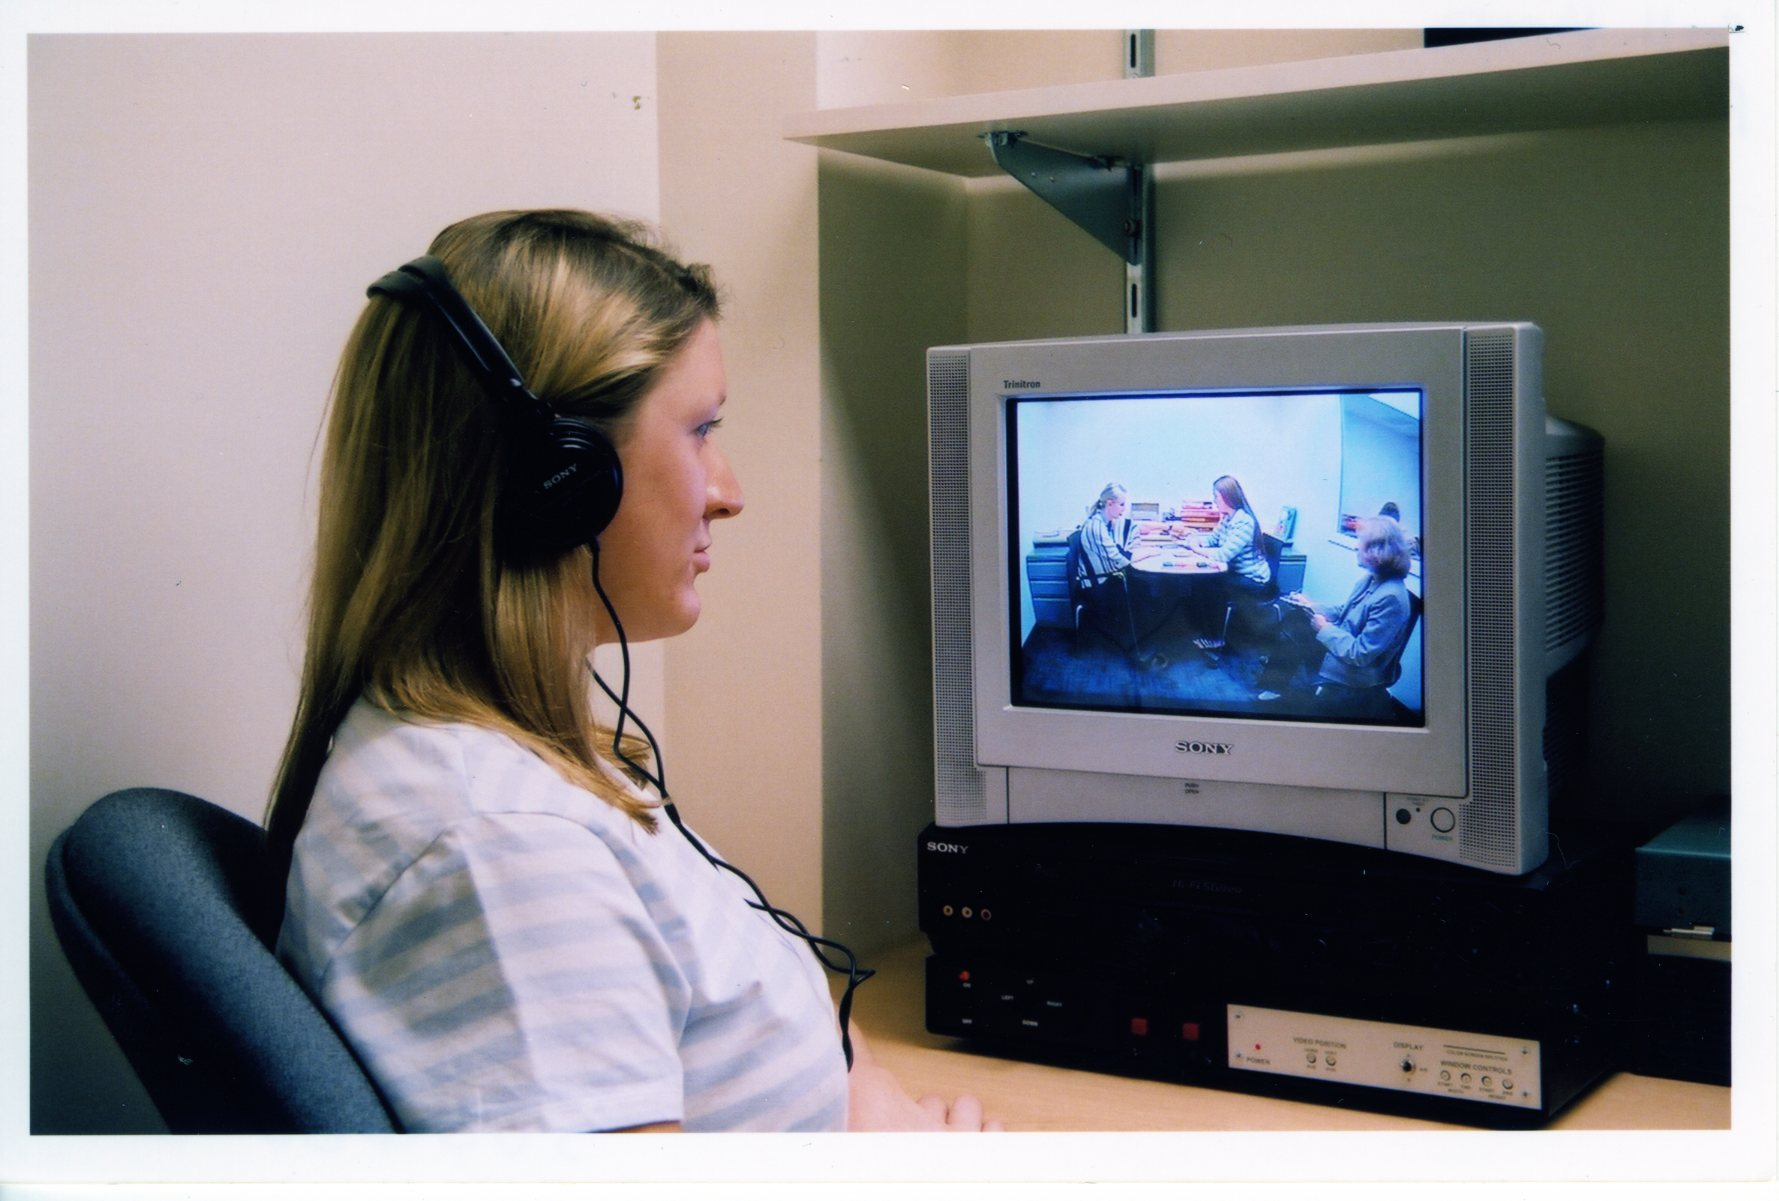 Student observing speech-pathology treatment via closed-circuit television and headphones.